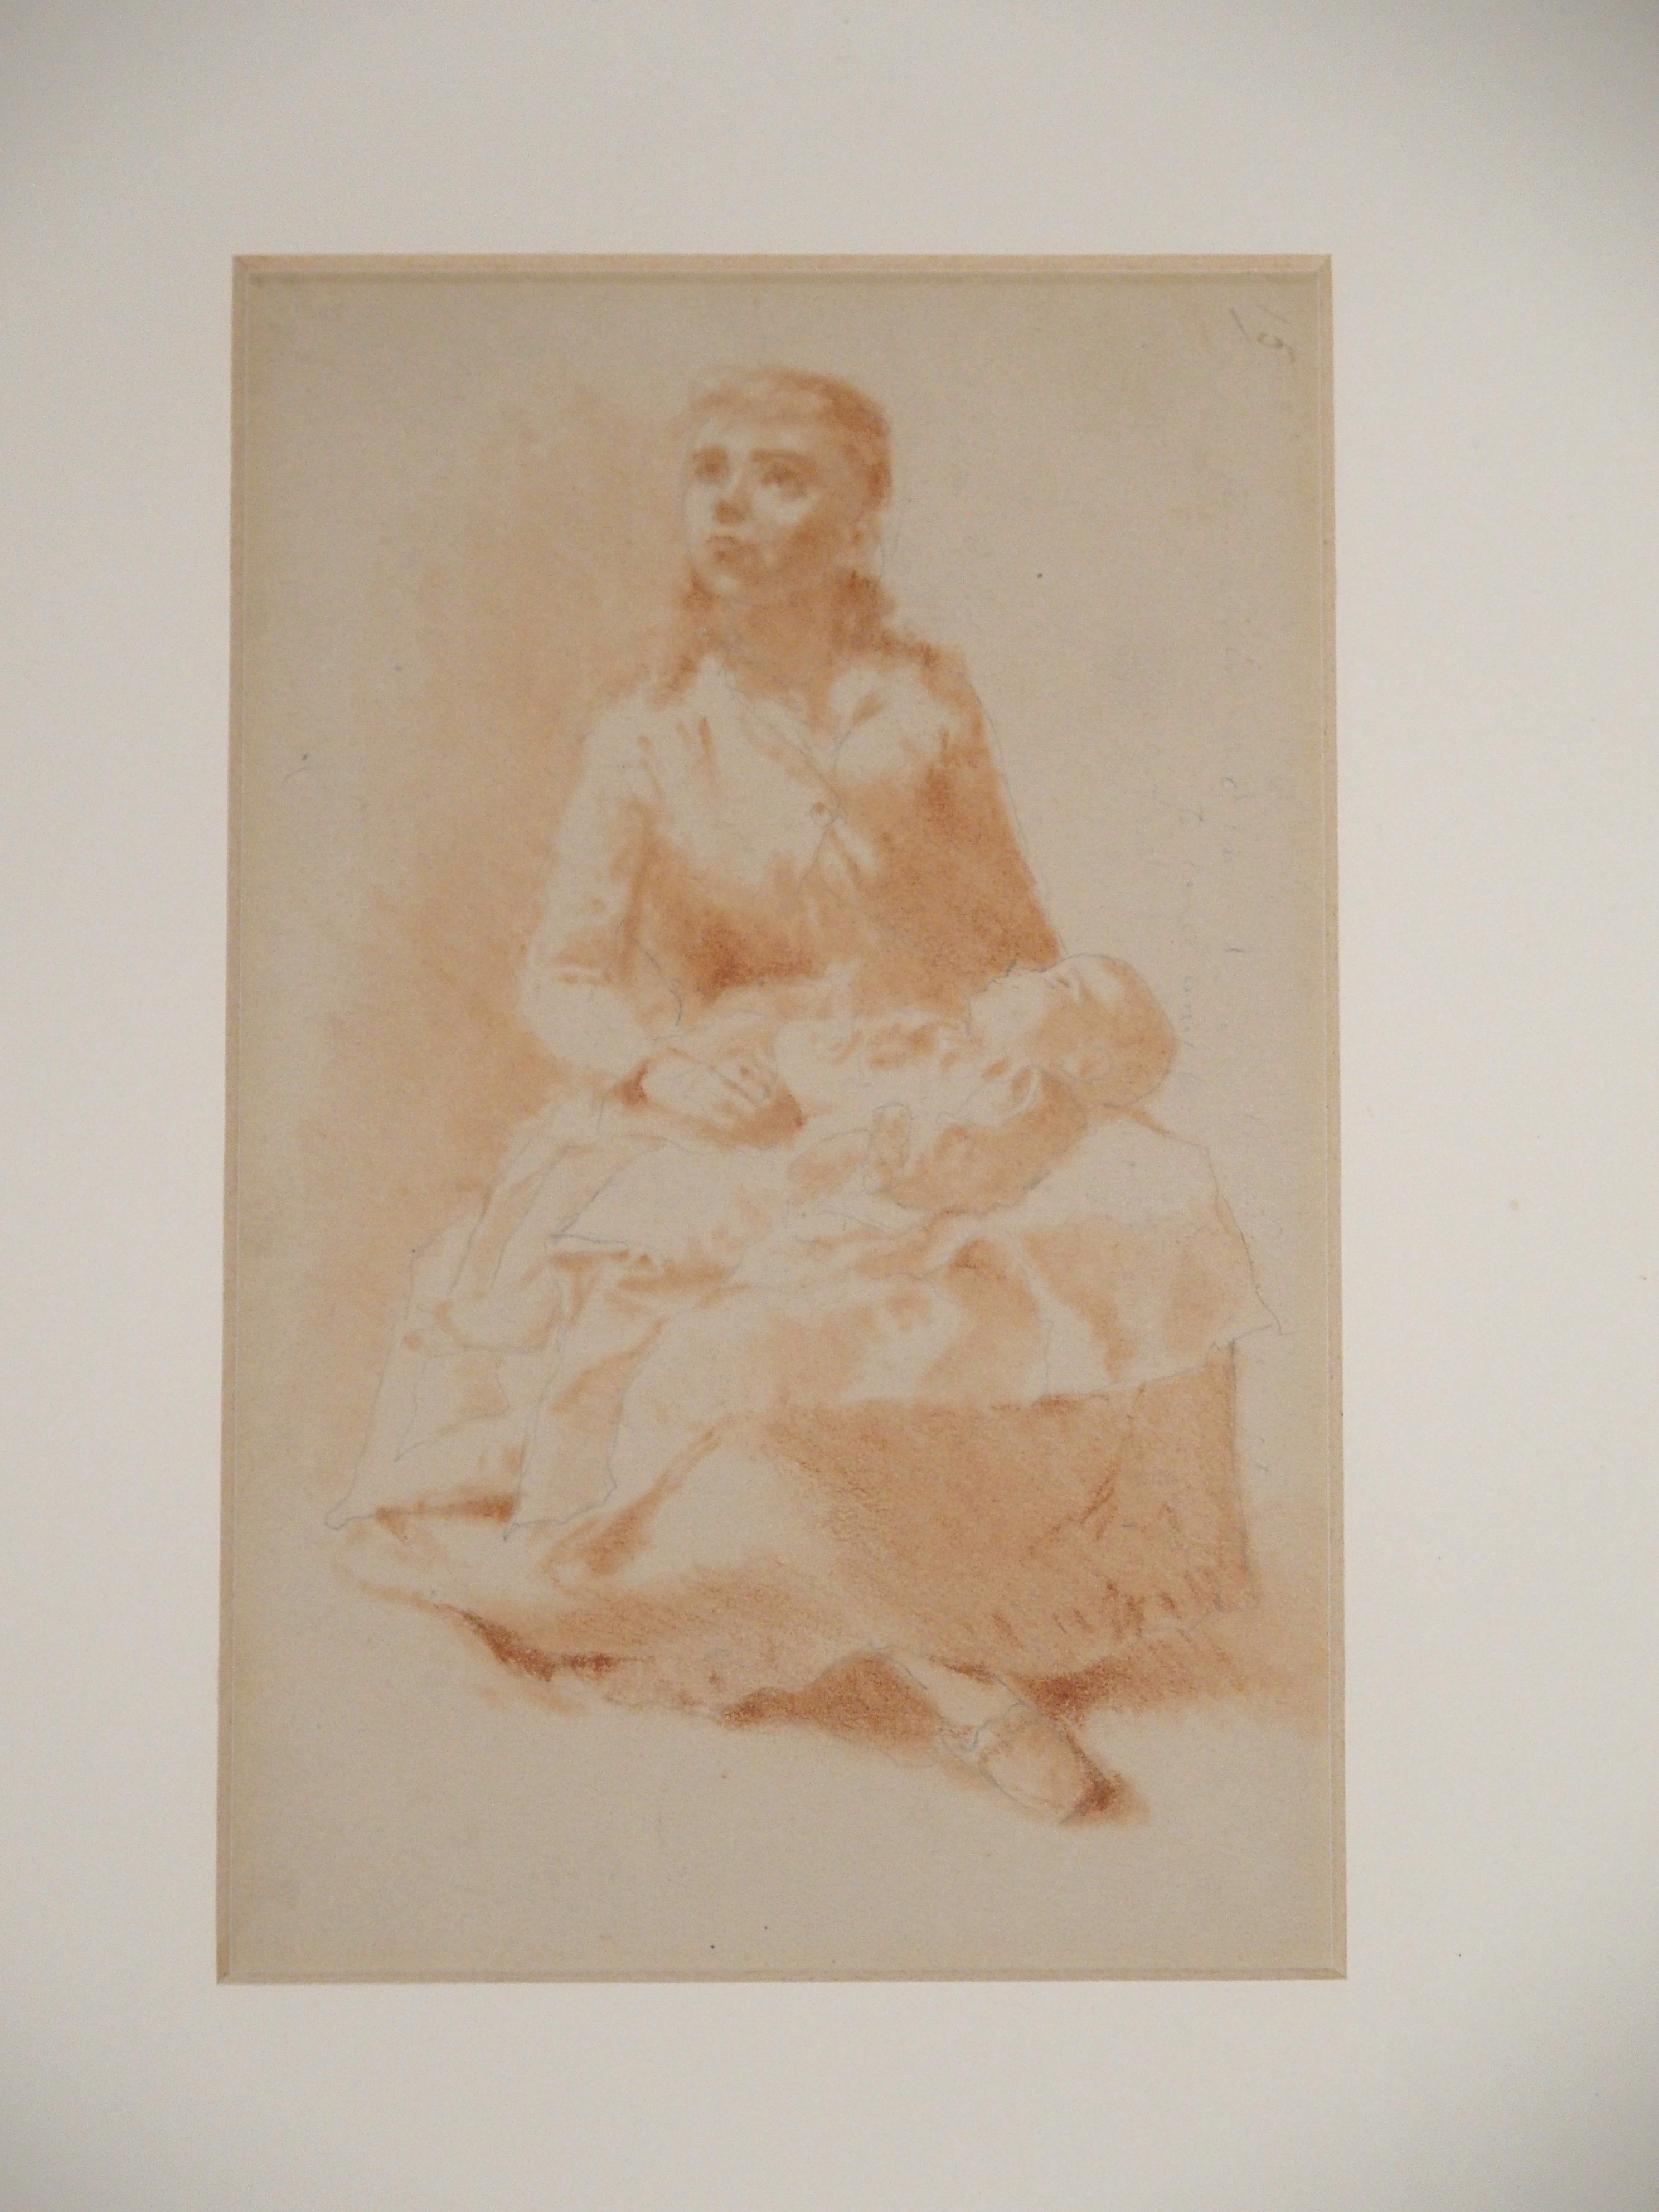 •A COLLECTION TO INCLUDE DRAWINGS, GREETINGS CARDS AND A BOOK ROBERT LEISHMAN 'Bob', inscribed, - Image 4 of 11